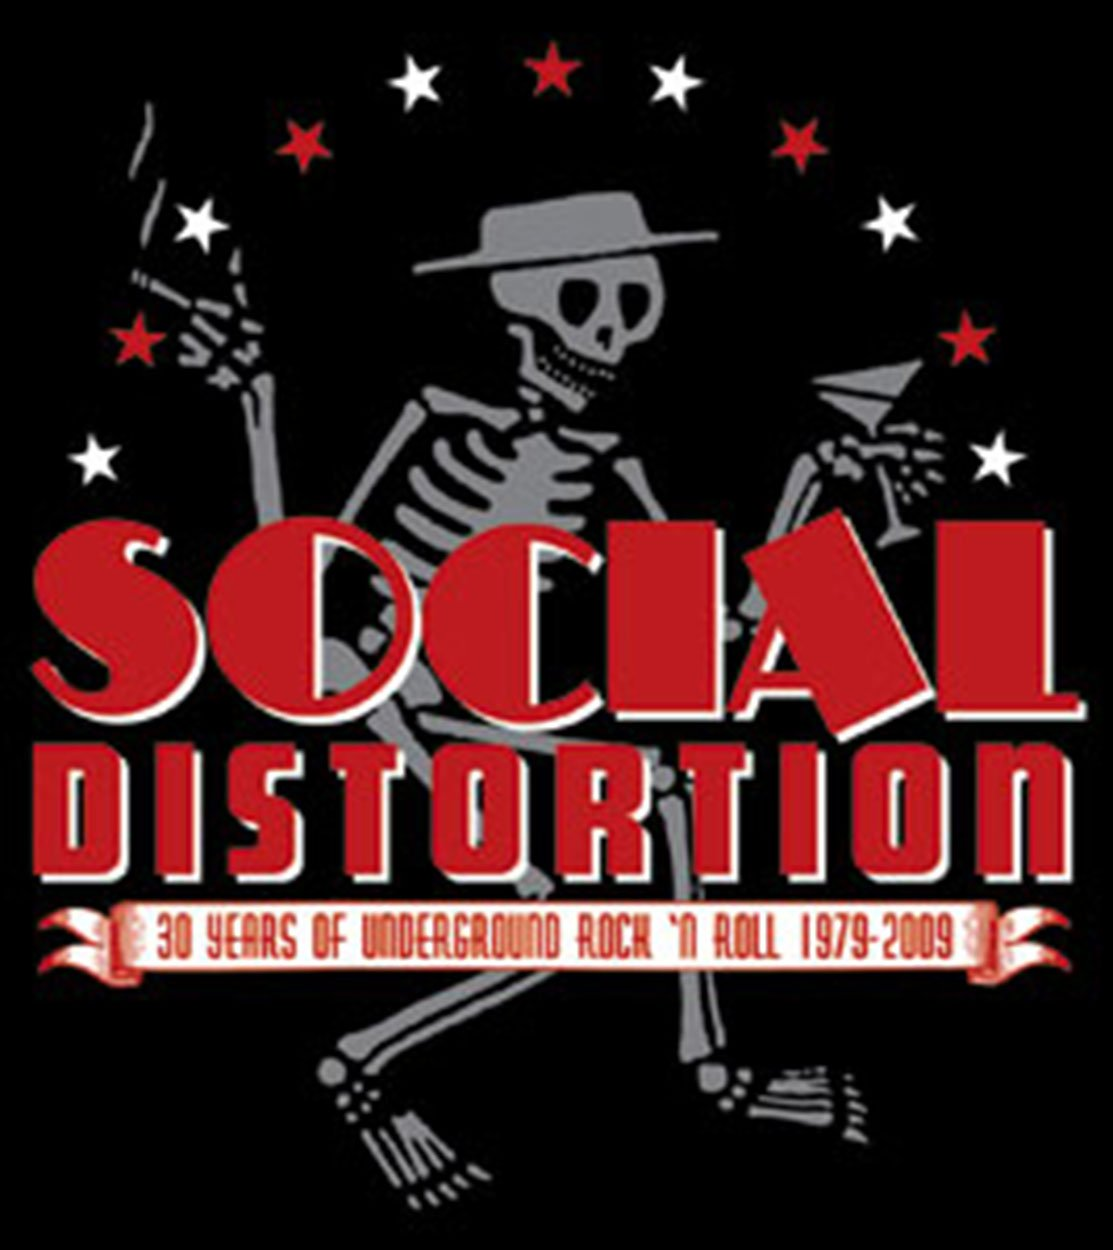 4.5 x 4 Officially Licensed Products Classic Rock Artwork Skelly and Logo Long Lasting for Any Surface Sticker AufkleberDECAL SOCIAL DISTORTION Verzerrung Skelly /& Logo Sticker Aufkleber